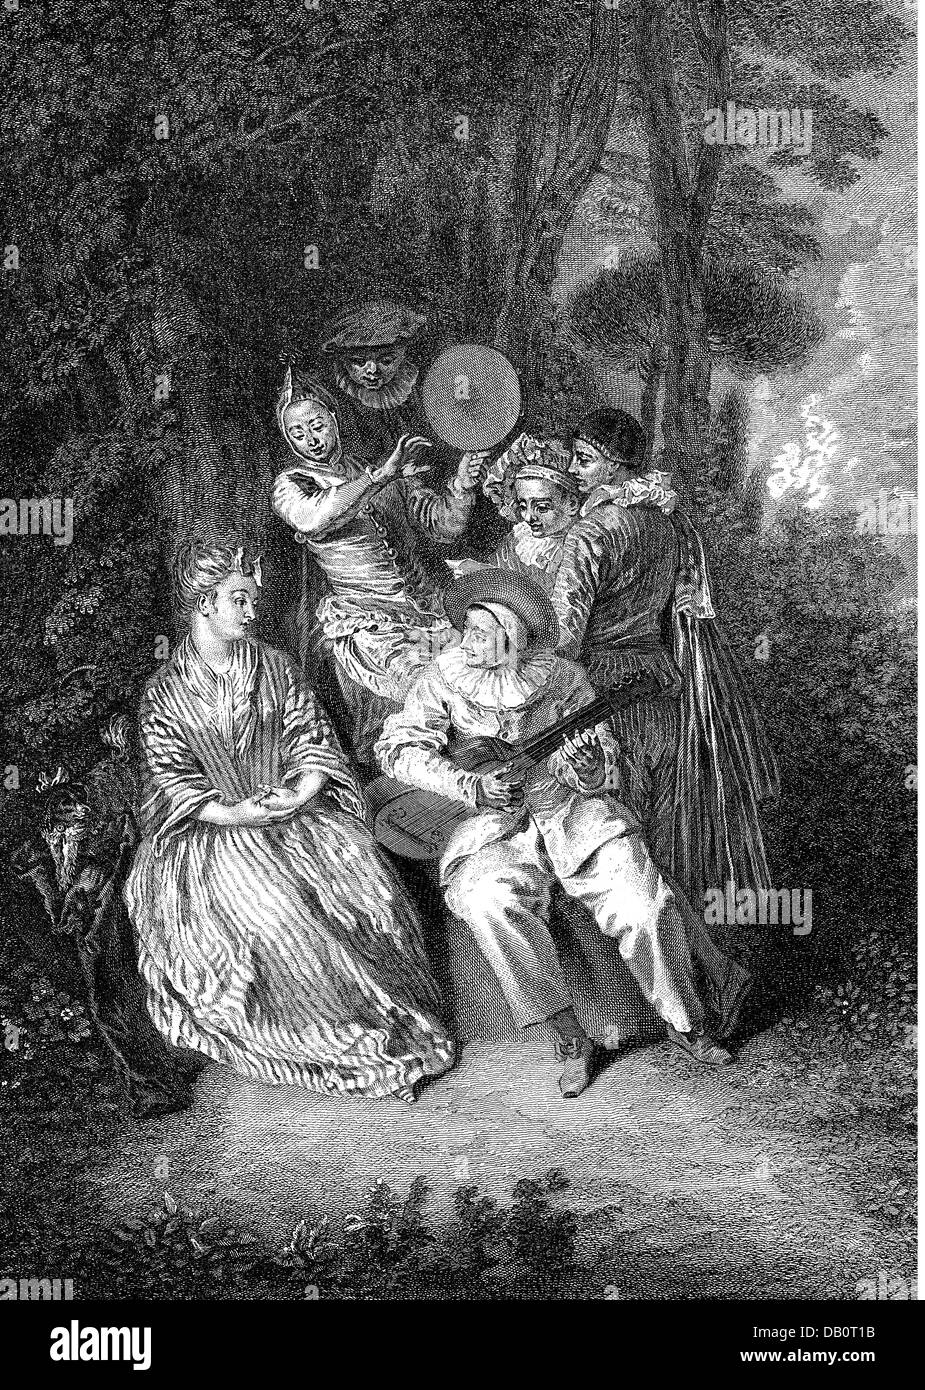 leisure, Italian serenade, after painting, by Antoine Watteau (1684 - 1721), copper engraving, by Gerard Scotin - Stock Image